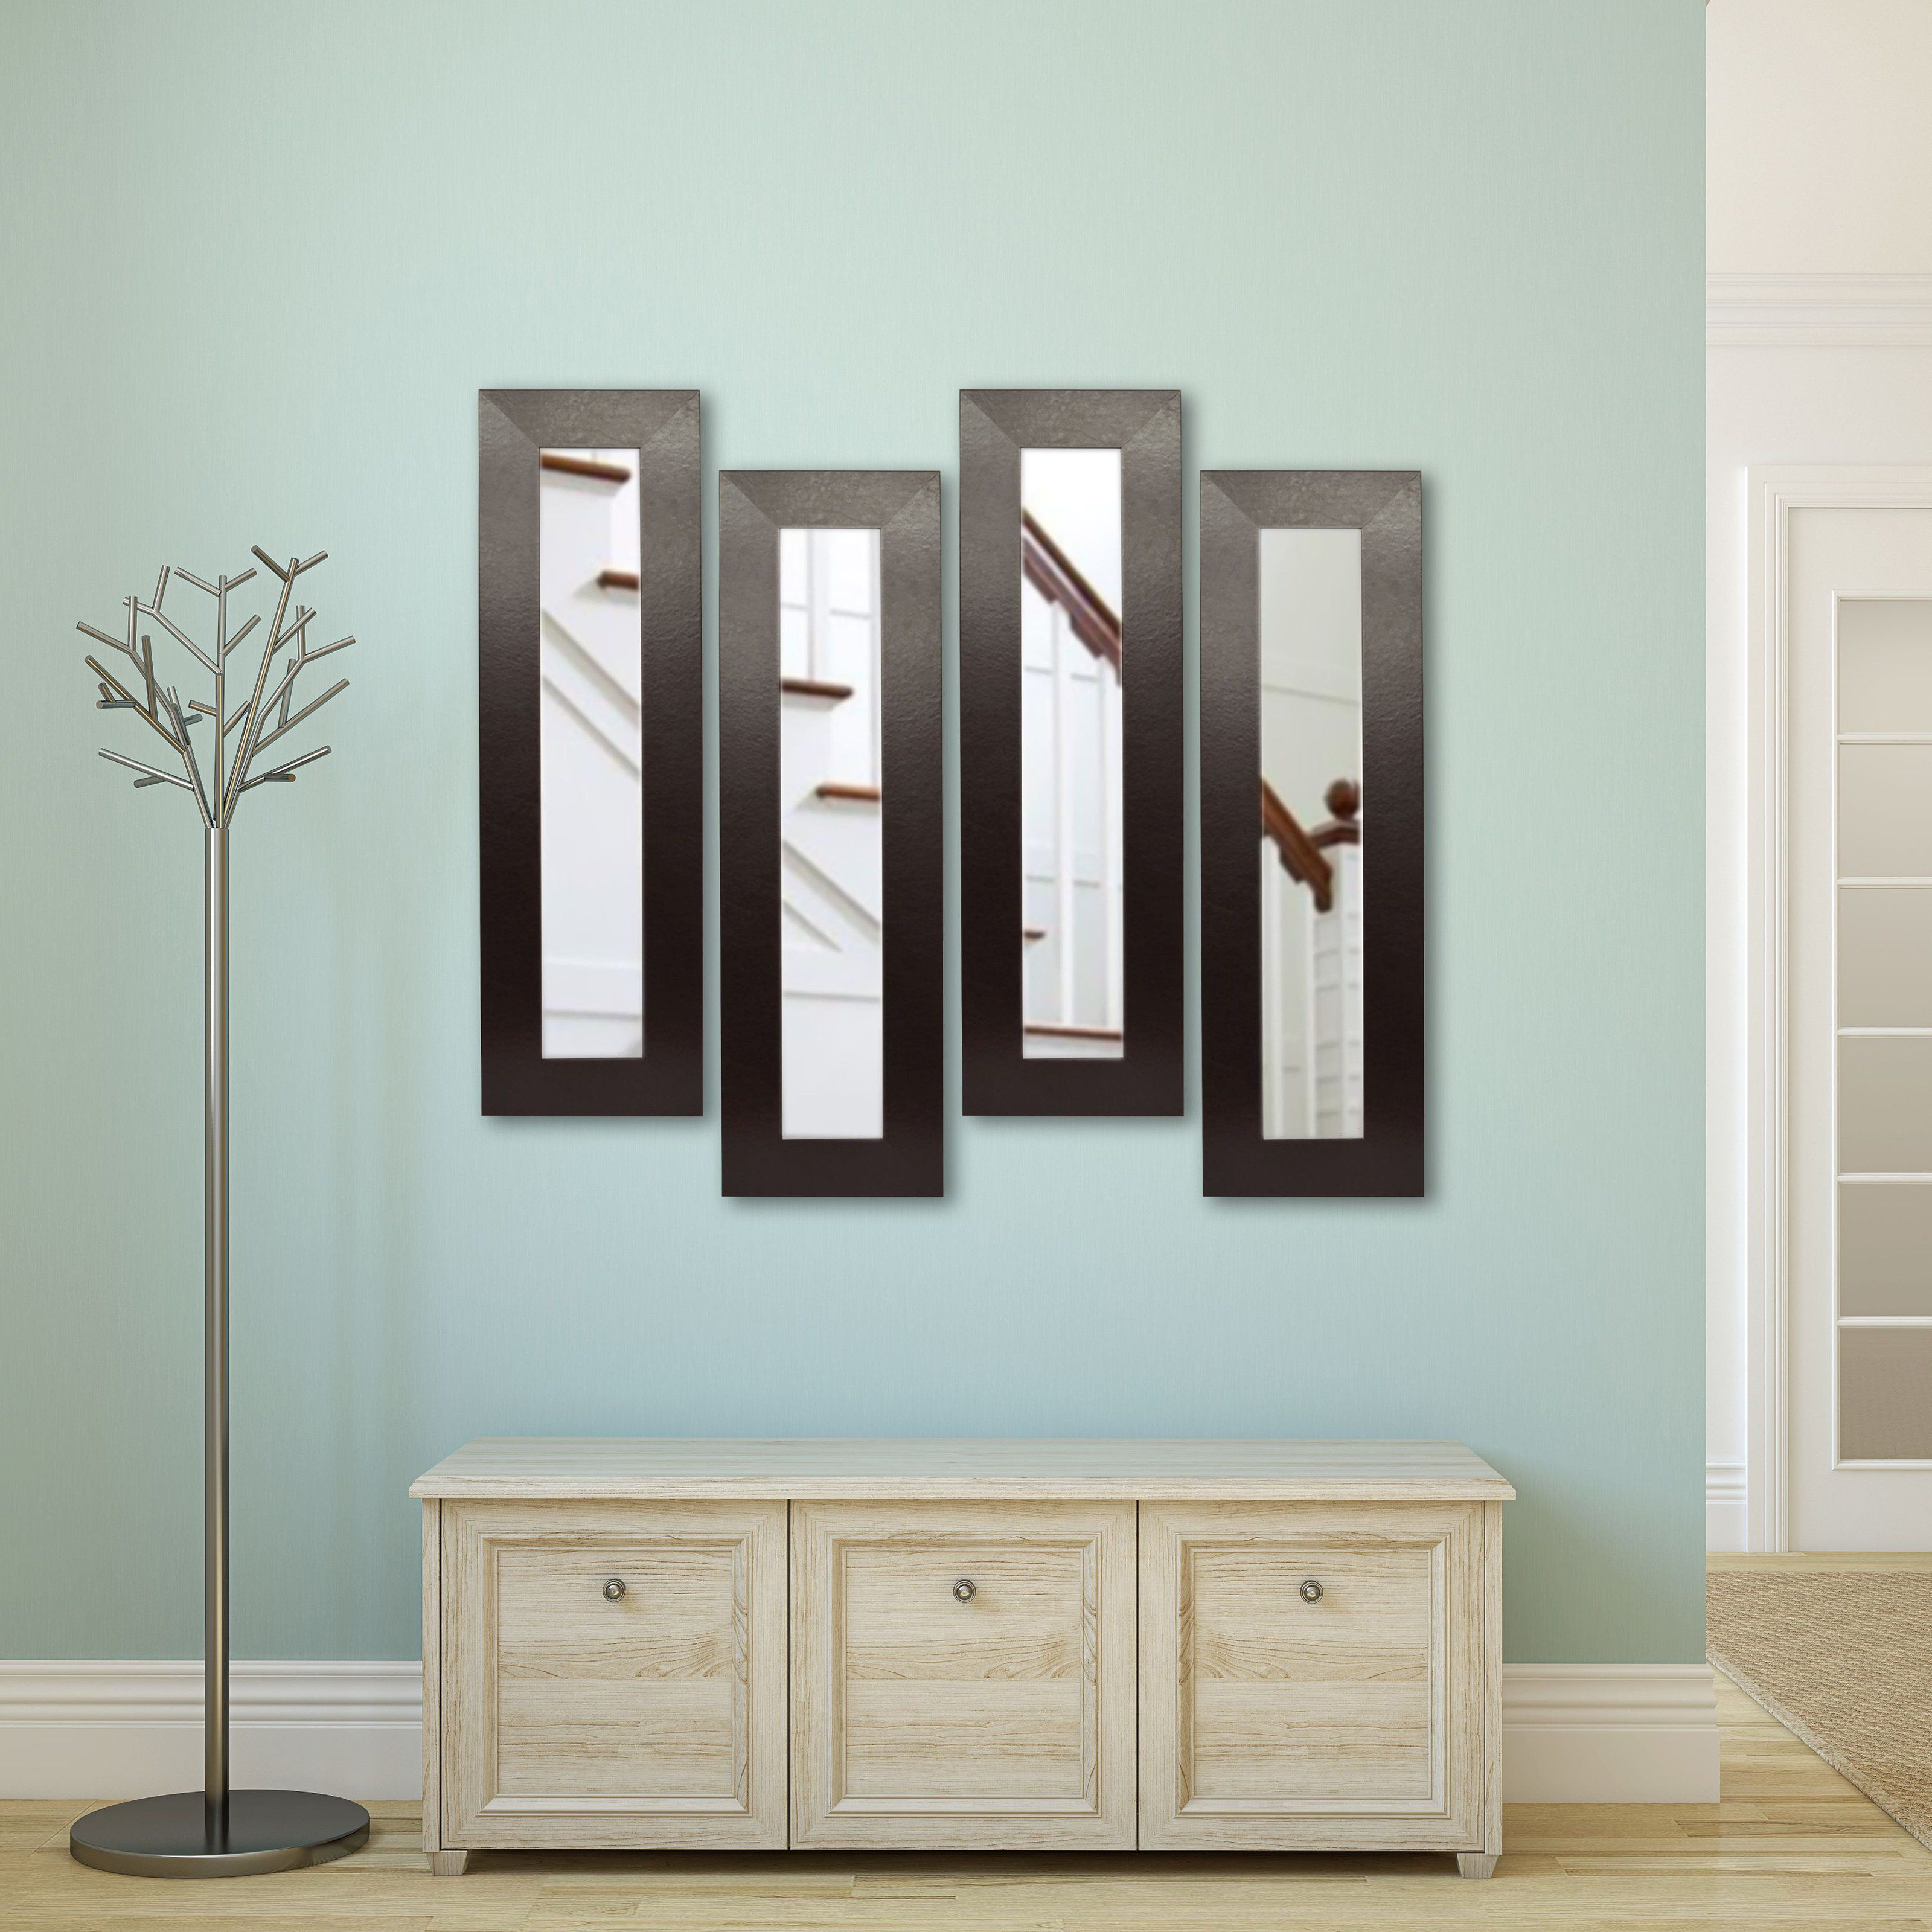 Rayne mirrors molly dawn brown leather wide wall mirror p224 16 rayne mirrors molly dawn brown leather wide wall mirror p224 16 amipublicfo Images